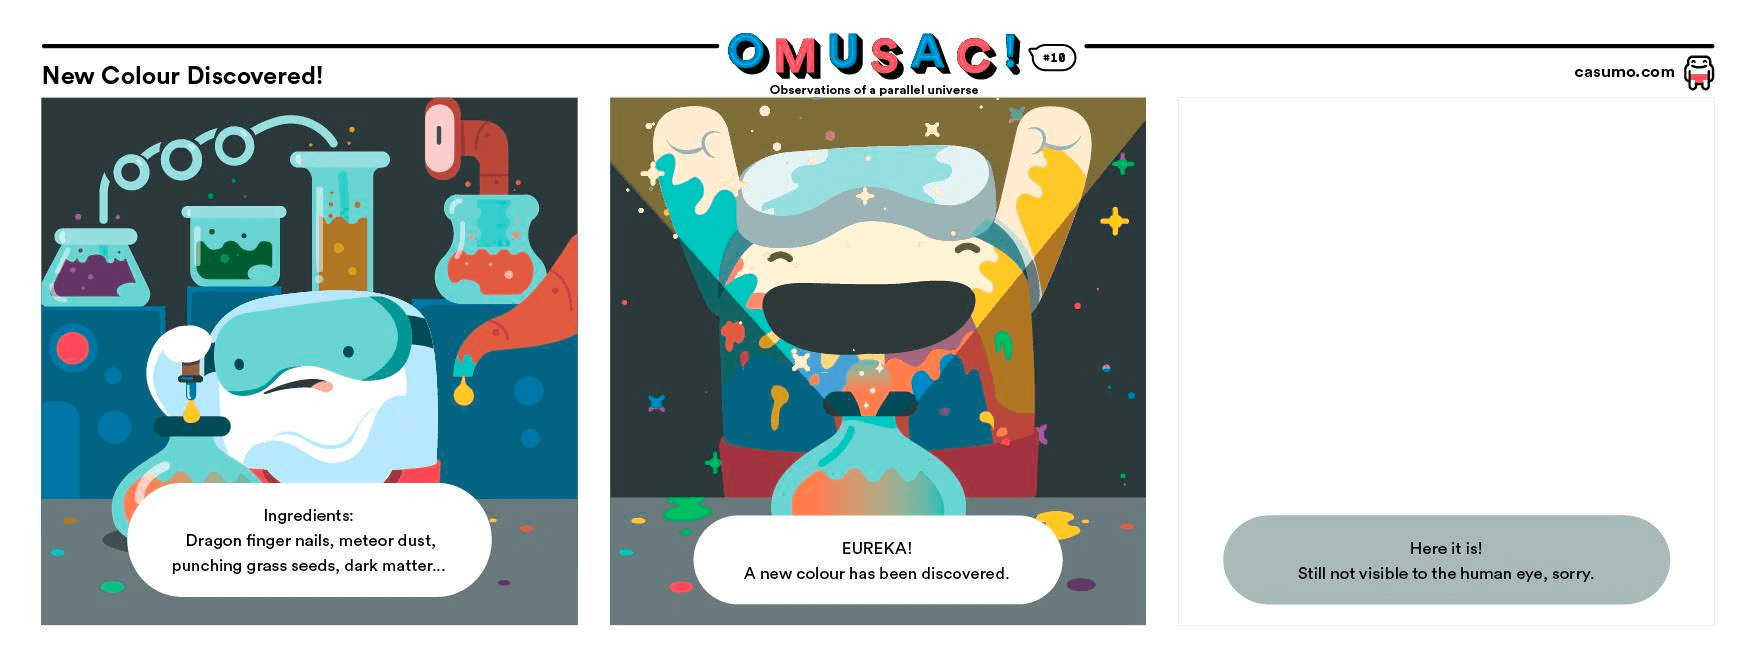 Omusac comic strip from Casumo casino